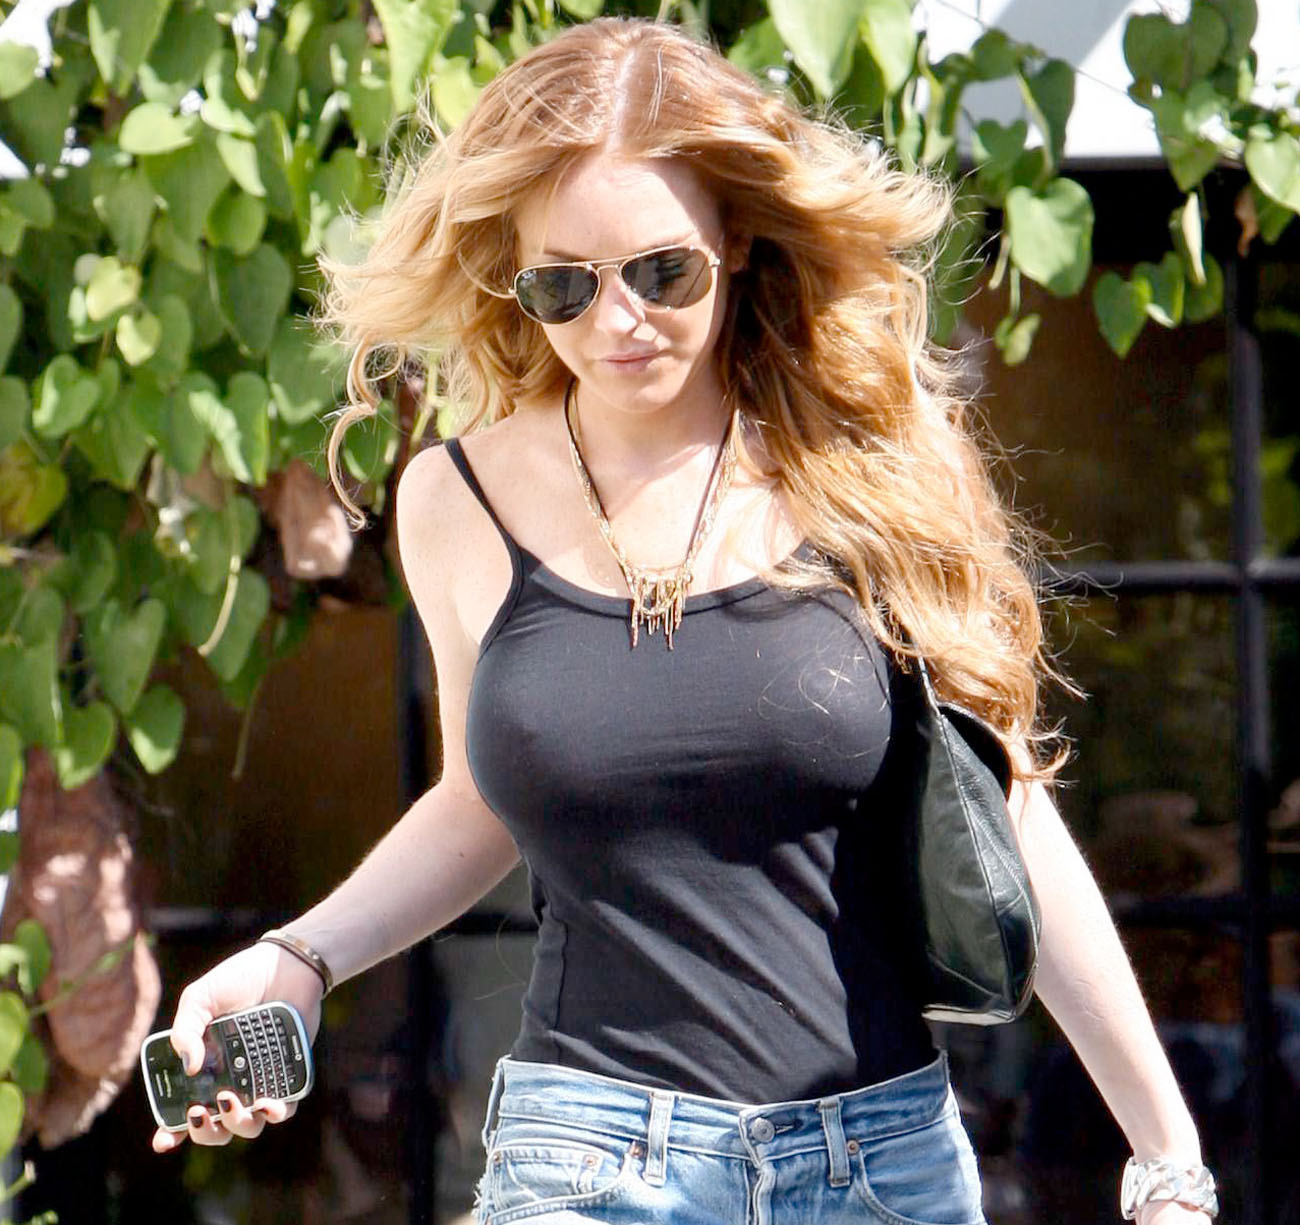 bra through Lindsay see lohan